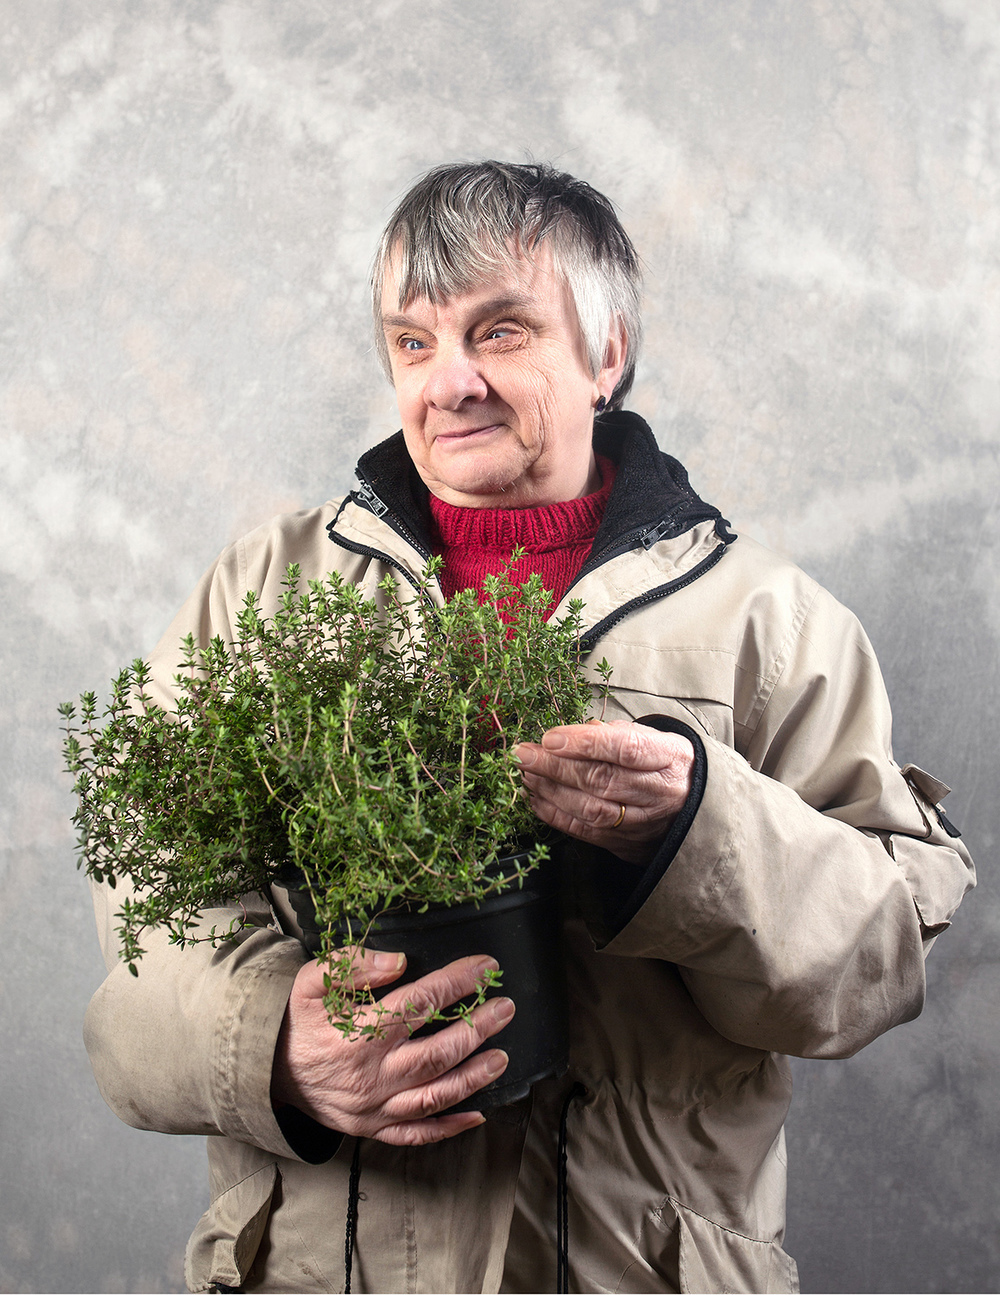 """""""I had sight until I was about 32, and then I lost it. The gardening is great, it's hands on and I get to meet people. At the moment we're planting cuttings of herbs, and I am interested in herbs. There are so many services that have been cut by the council; these clubs make a lot of difference. They make me go out and mix with other visually impaired people which is really important. I like meeting people and coming here, and I do also learn things. At Christmas we do a garland, which is lovely because you can hang it up on the door. Andrew [tutor] showed us the onion sets we planted, and they've certainly grown. It would be good if we could see the real thing, this time they had leaves on.It's very important really to get out and see a bit of nature as it should be, you know?""""  Sylvia, Blind Gardening Club, Camborne, Cornwall"""